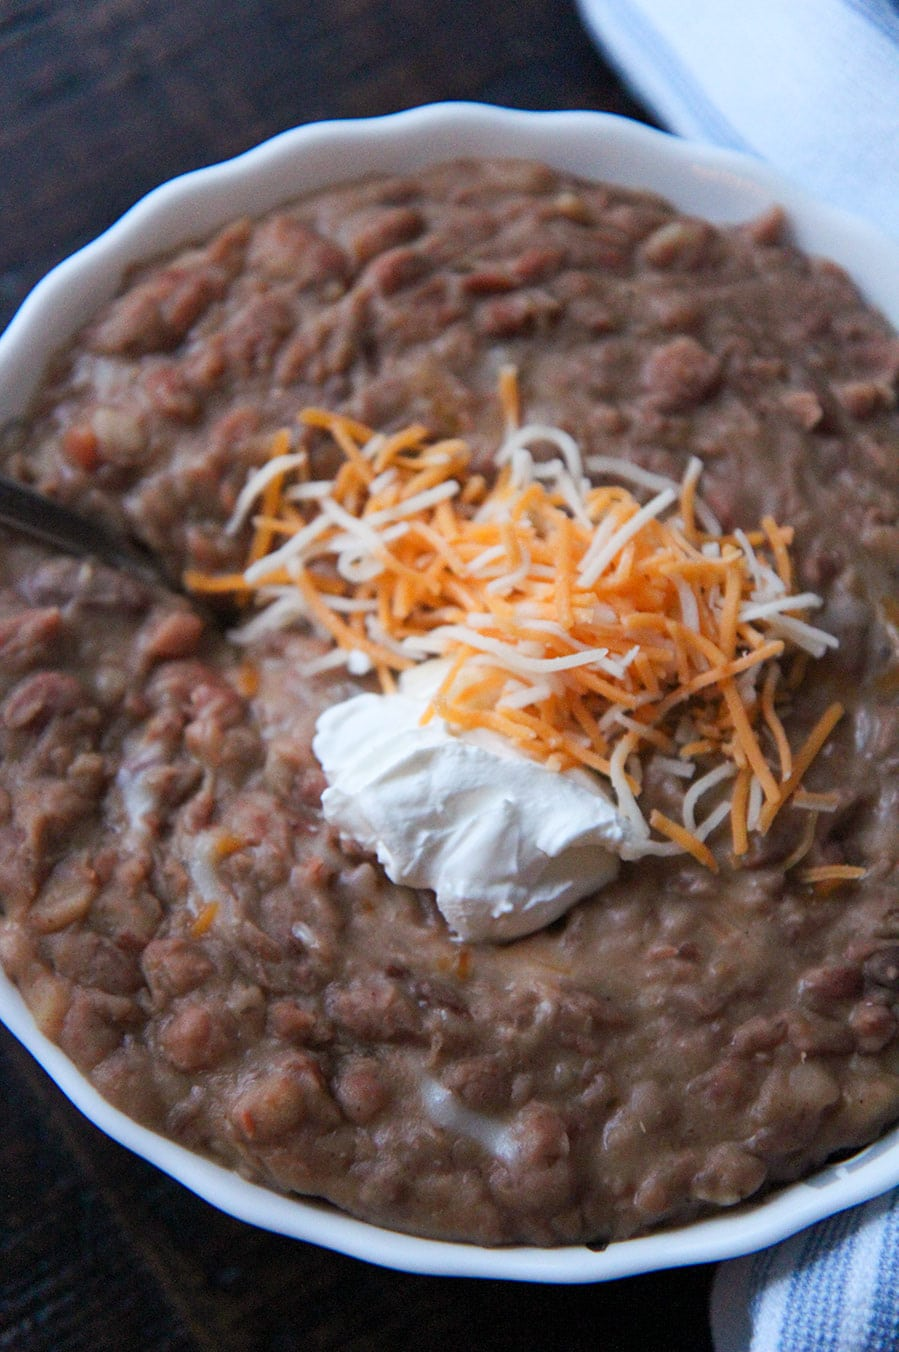 beans in a white bowl with sour cream and cheese on top.